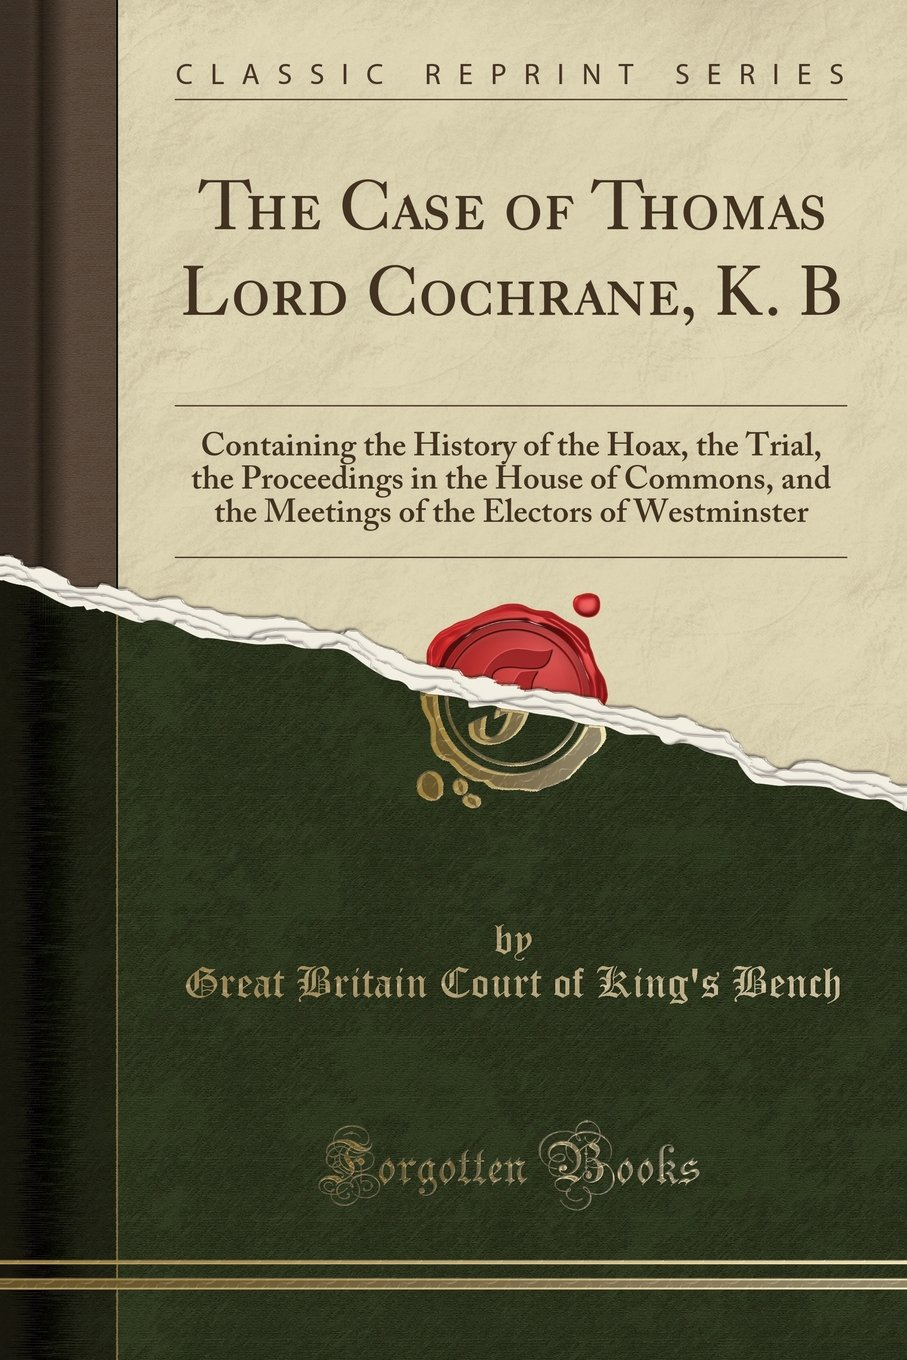 The Case of Thomas Lord Cochrane, K. B: Containing the History of the Hoax, the Trial, the Proceedings in the House of Commons, and the Meetings of the Electors of Westminster (Classic Reprint) ebook